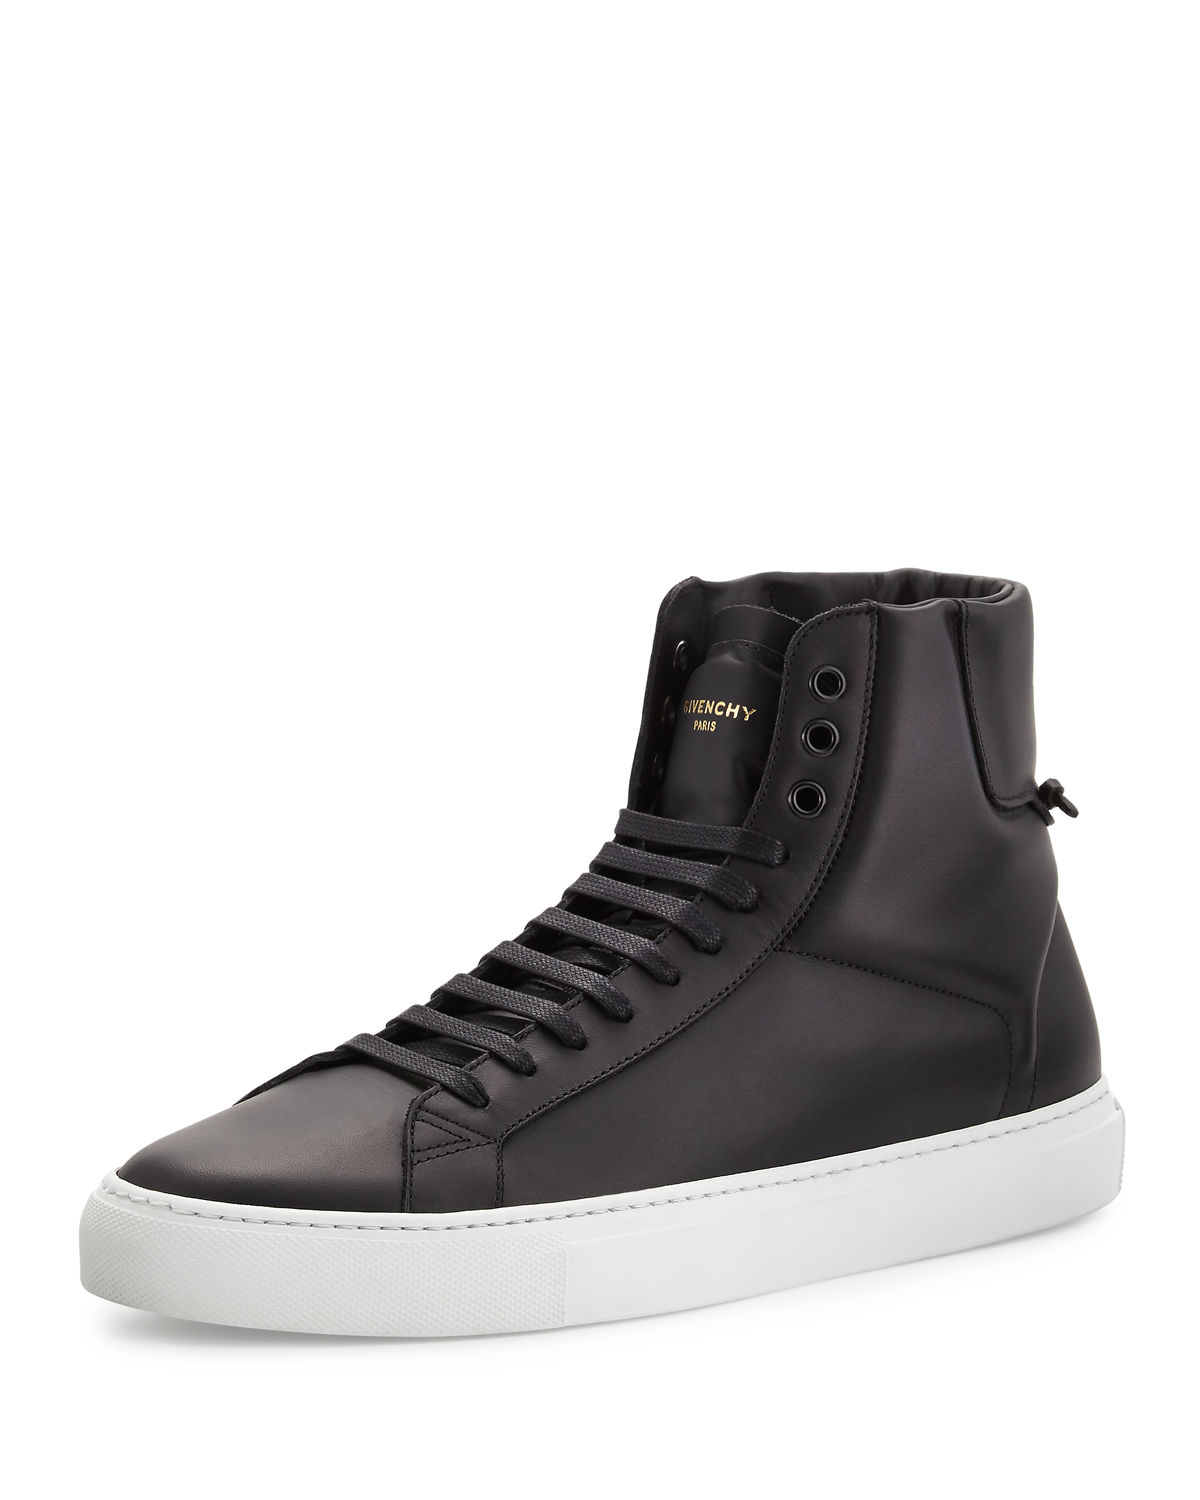 Givenchy Urban Street High Top Sneakers In Black For Men